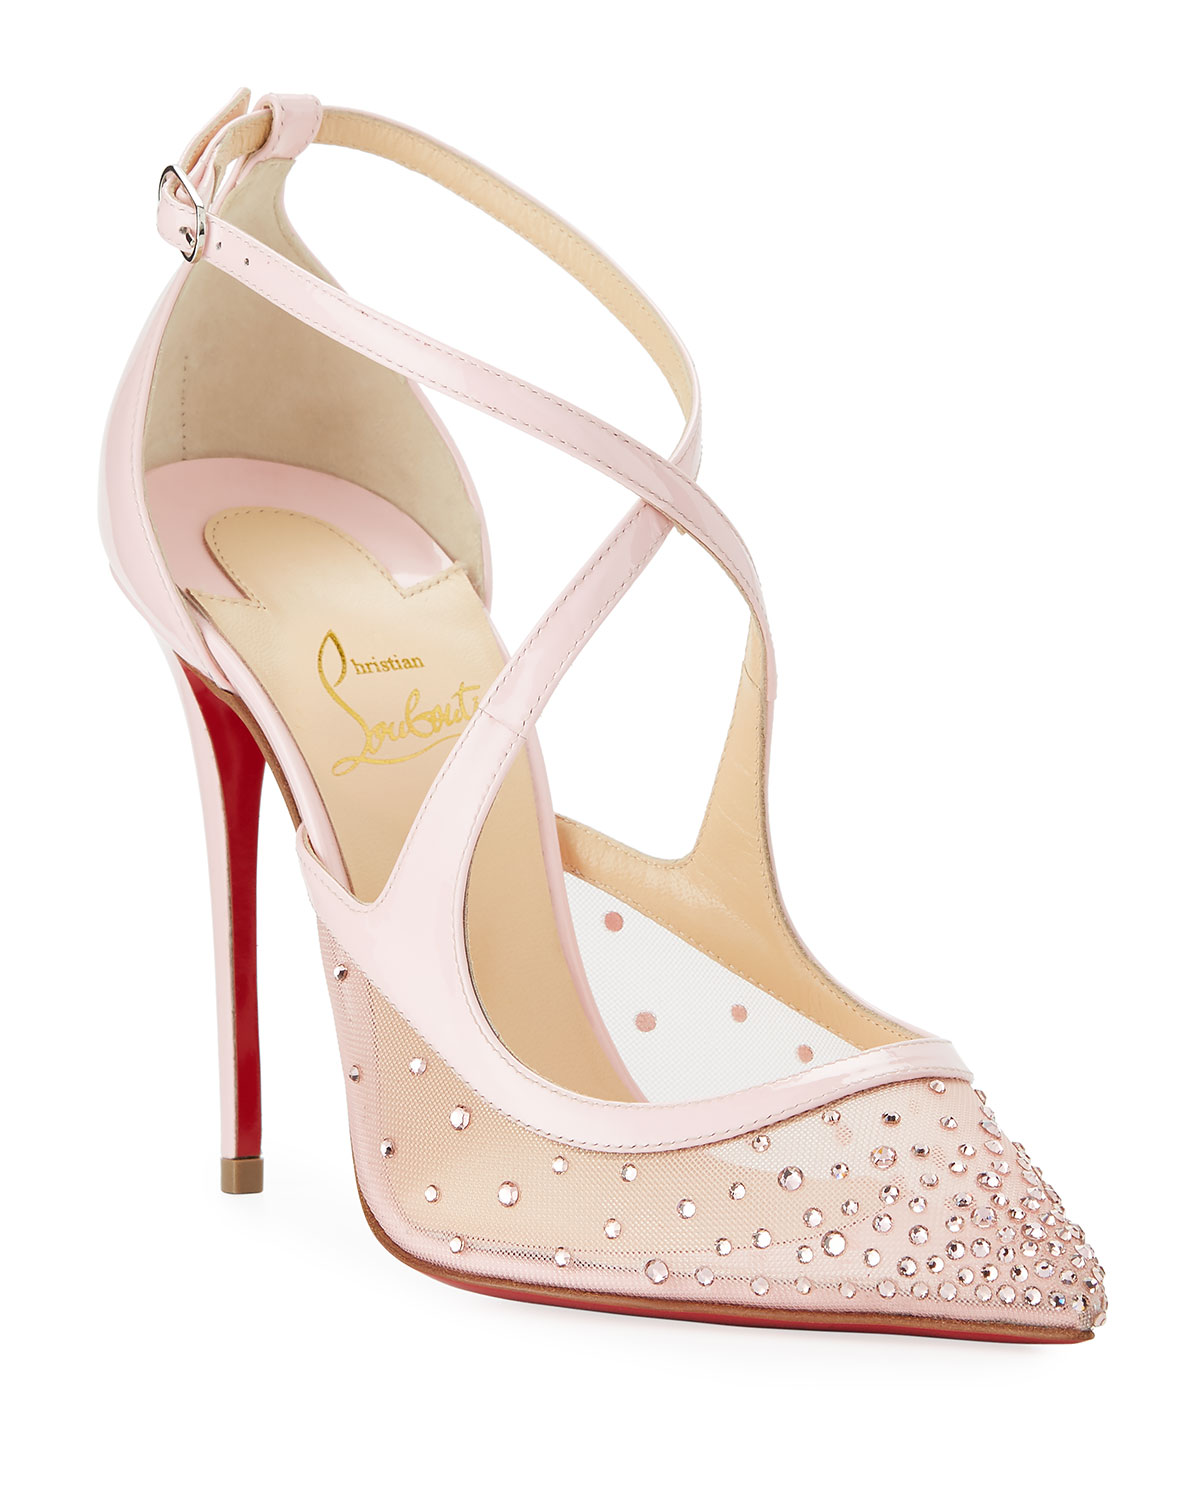 6bc52340da67 Christian Louboutin Twistissima Crisscross Red Sole Pumps